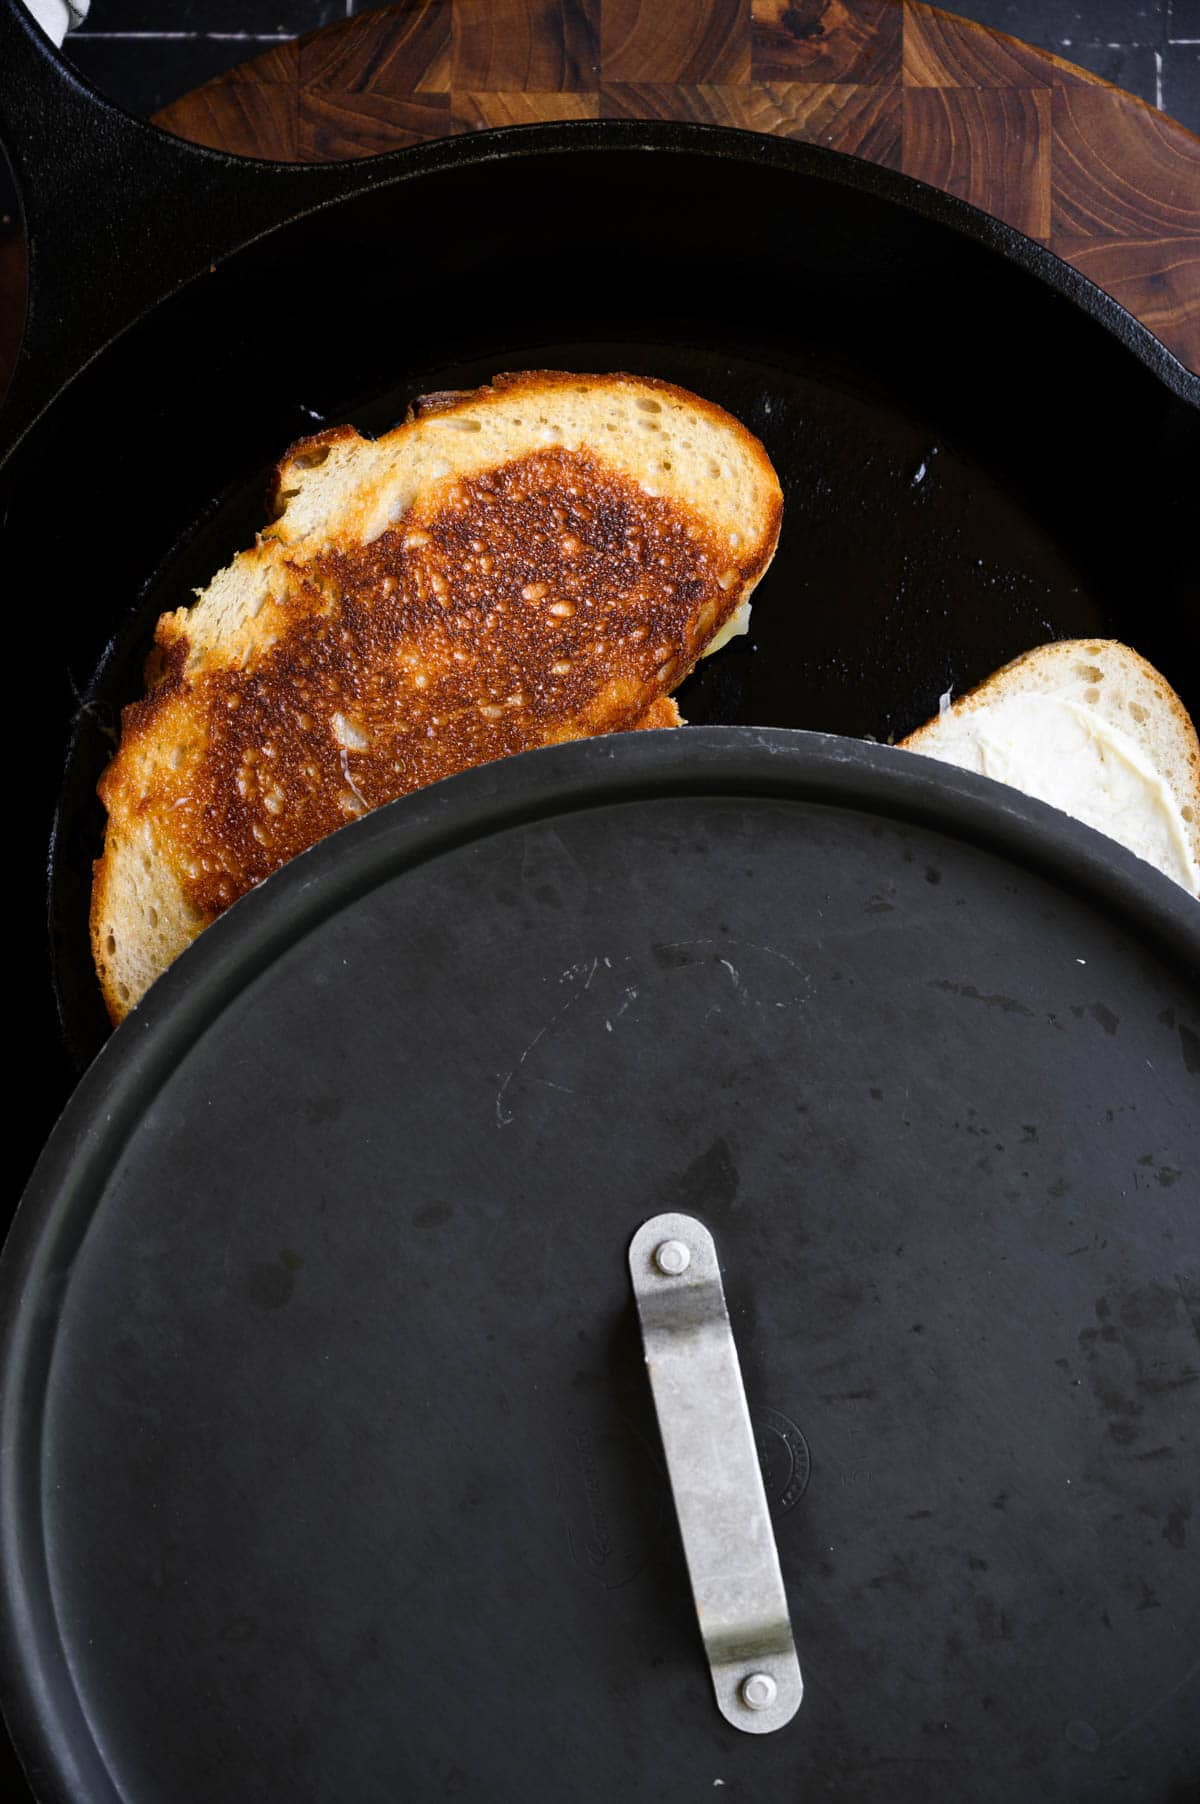 a cast iron skillet half covered by a black lid revealing half of a grilled sandwich.